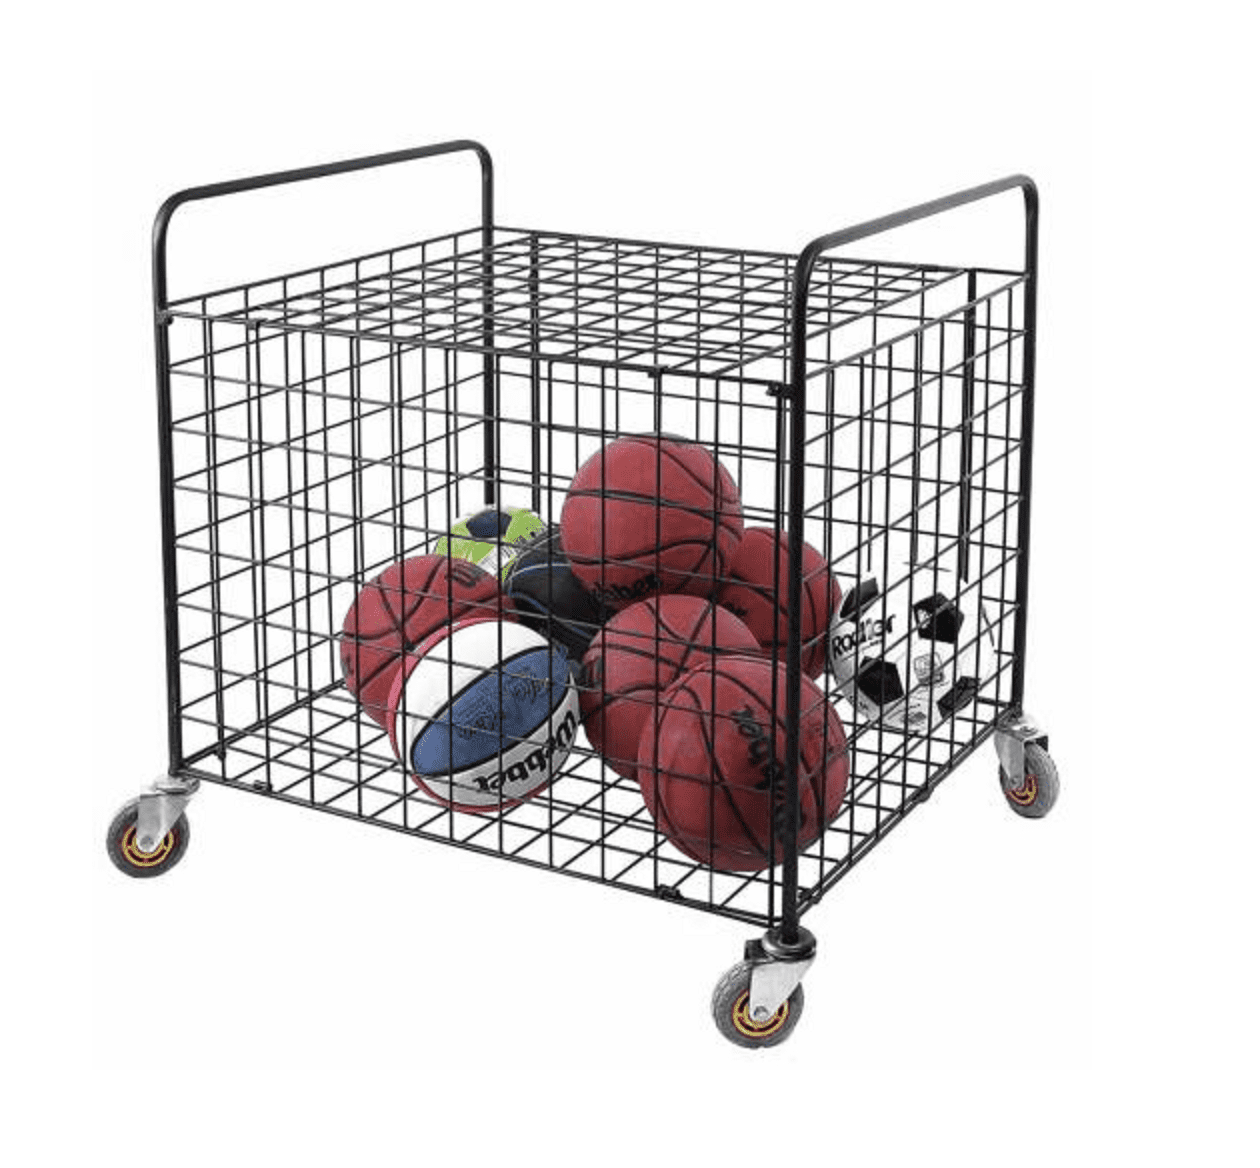 Metal Rolling Multi Sports Ball Storage Basketball, Football Equipment Cart  - Walmart.com - Walmart.com